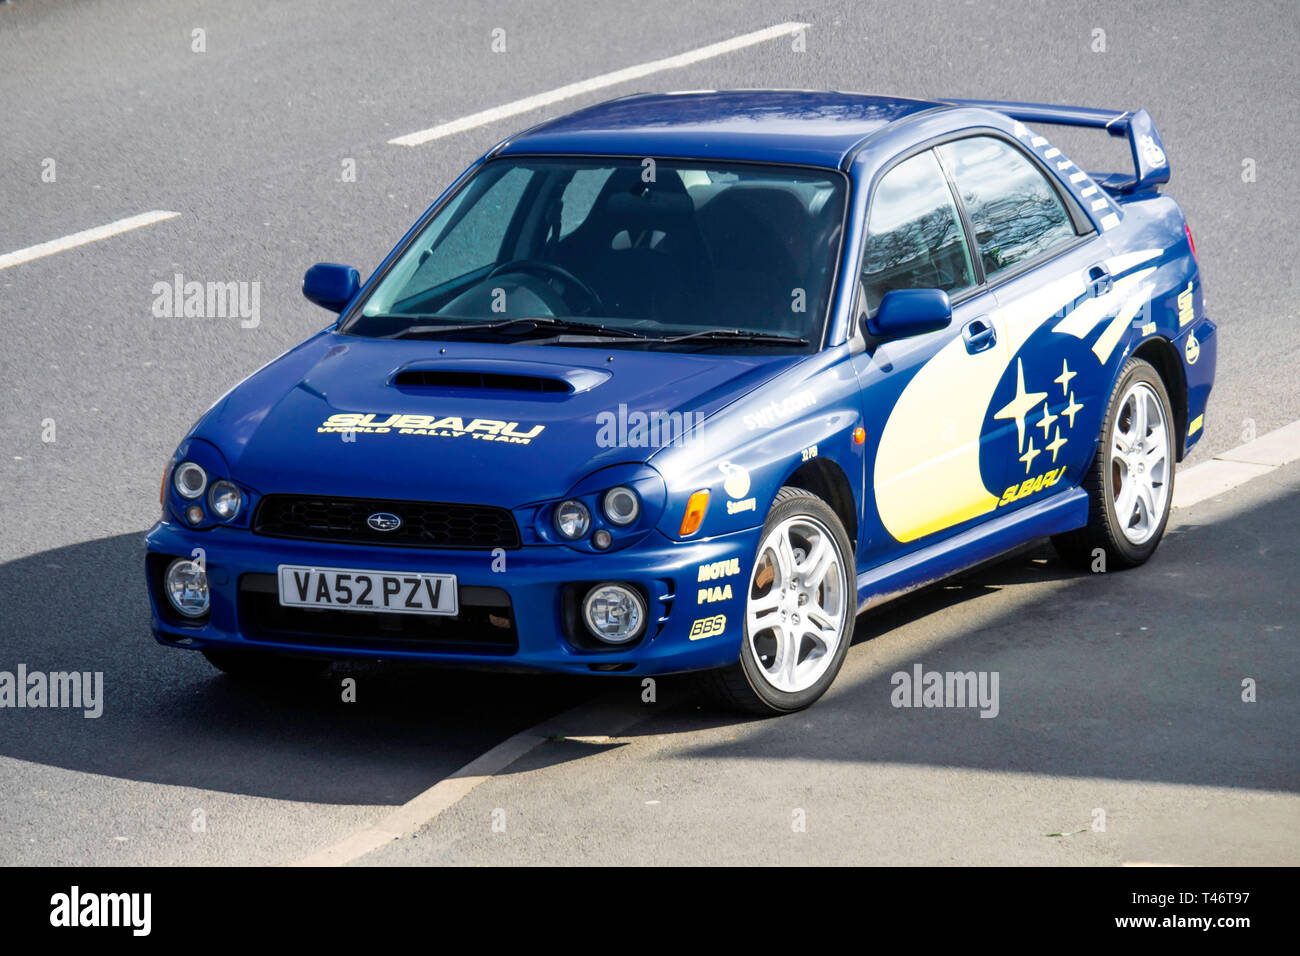 A classic 2012 Blue and Yellow Subaru WRX sports car in  North Yorkshire England UK Stock Photo